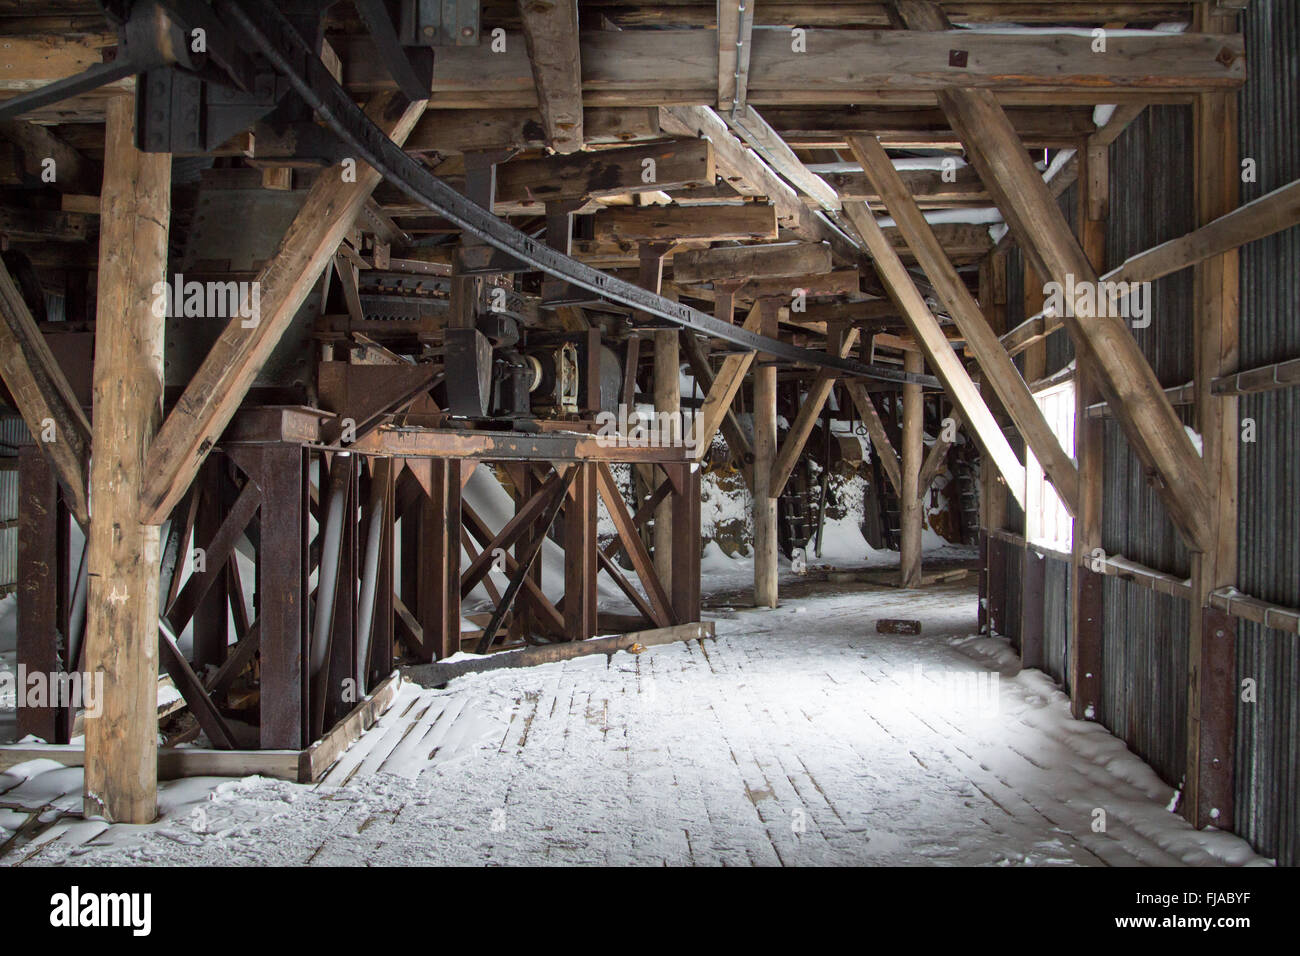 Machinery inside of an abandoned Arctic coal mine buildings in Longyearbyen, Spitsbergen (Svalbard). Norway - Stock Image